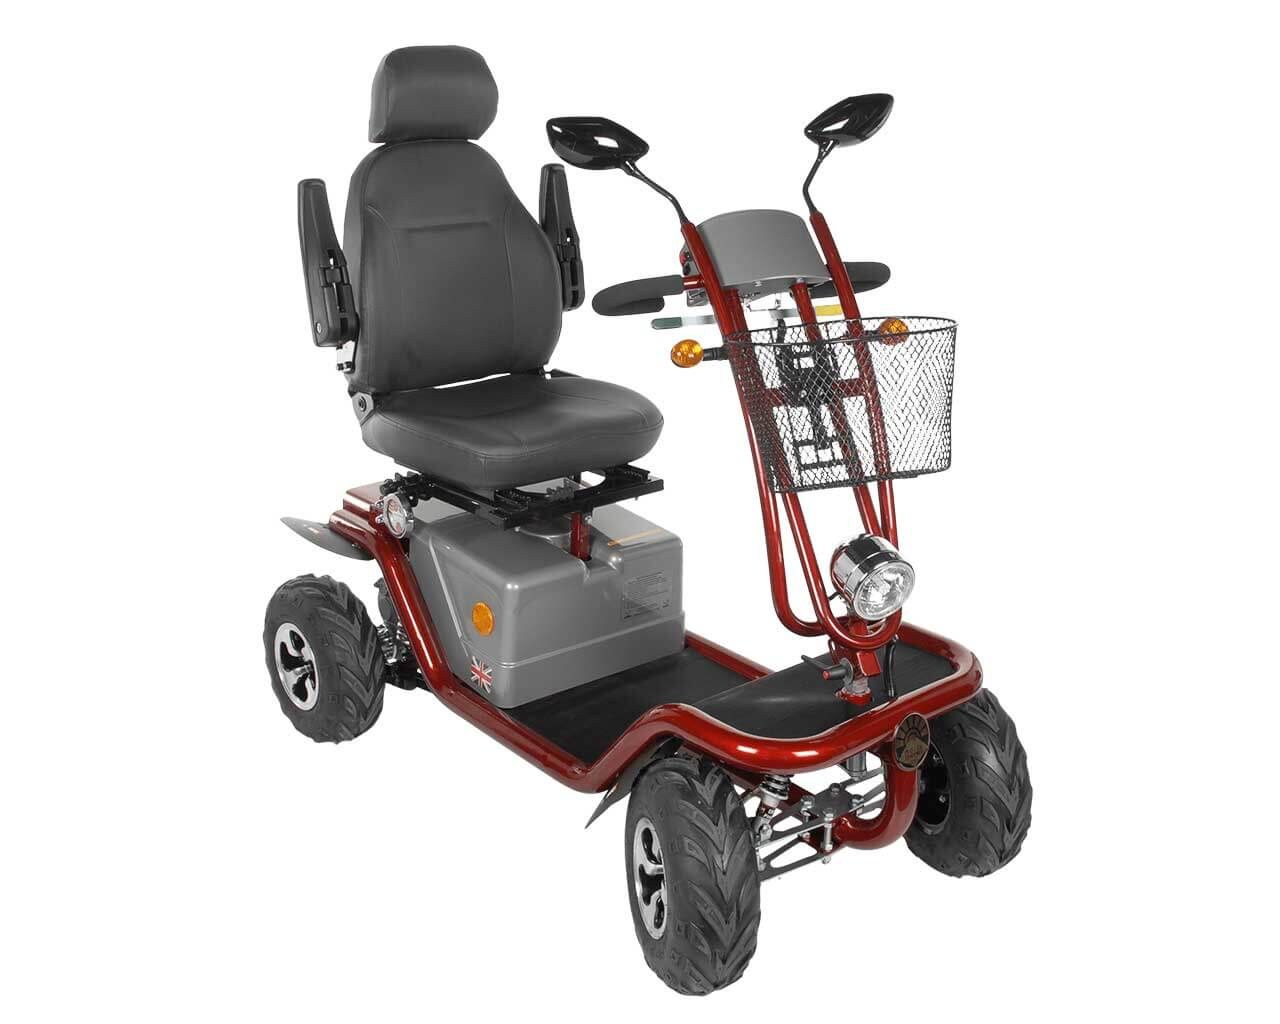 horizon mobility mayan ac mobility scooter for hire or sale. Black Bedroom Furniture Sets. Home Design Ideas